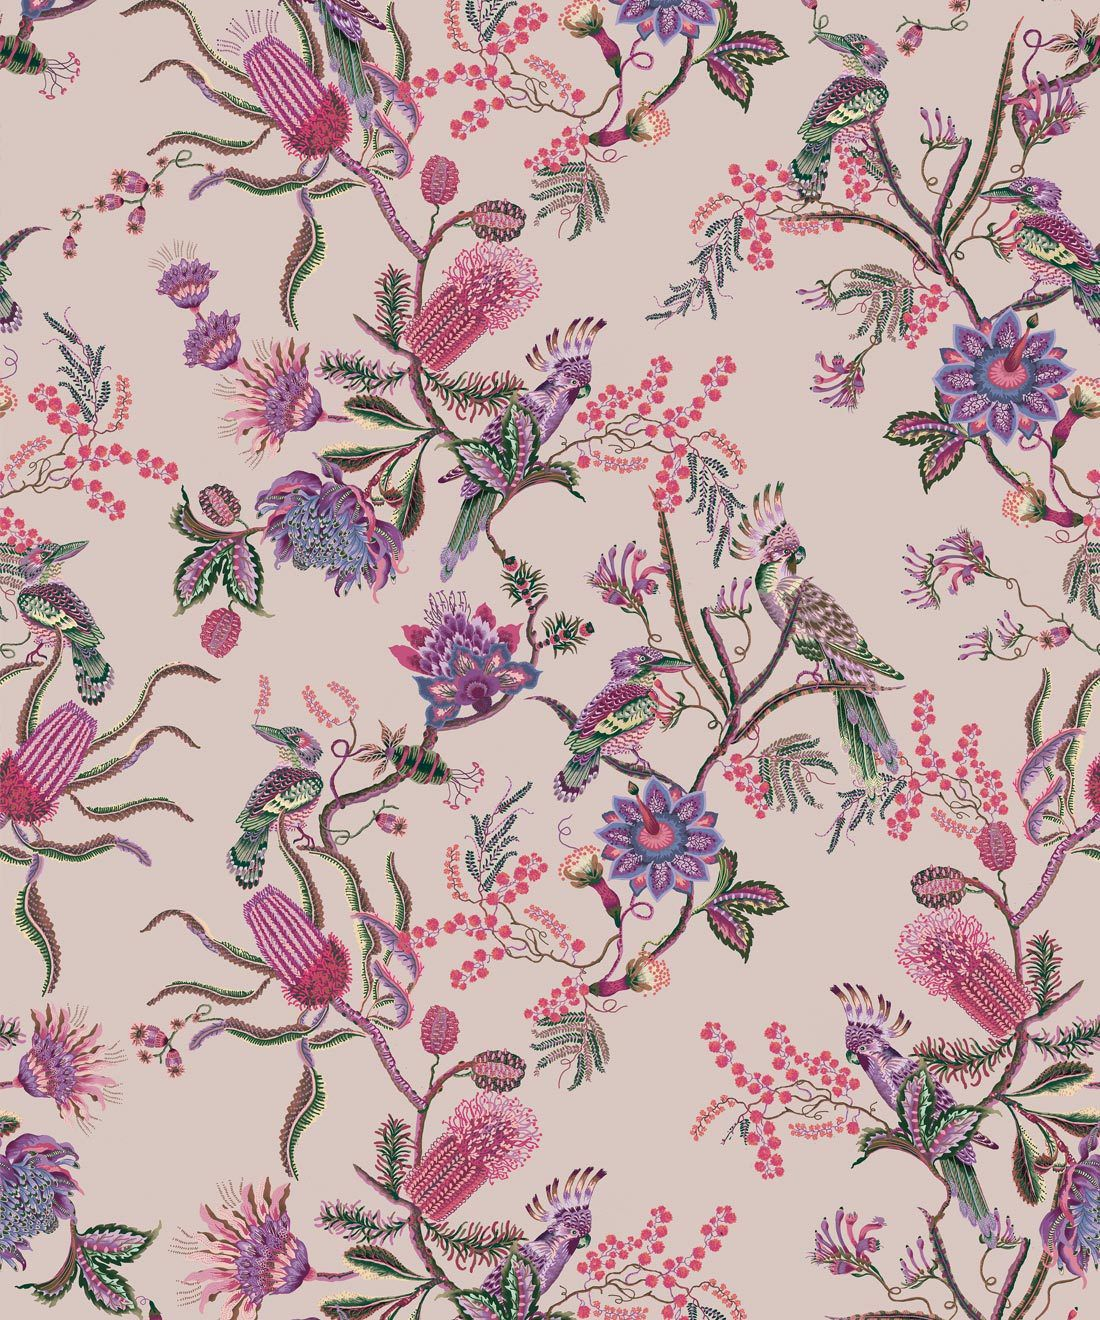 Matilda Wallpaper • Cockatoo, kookaburra • Australian Wallpaper • Milton & King Europe • Pinky Swatch